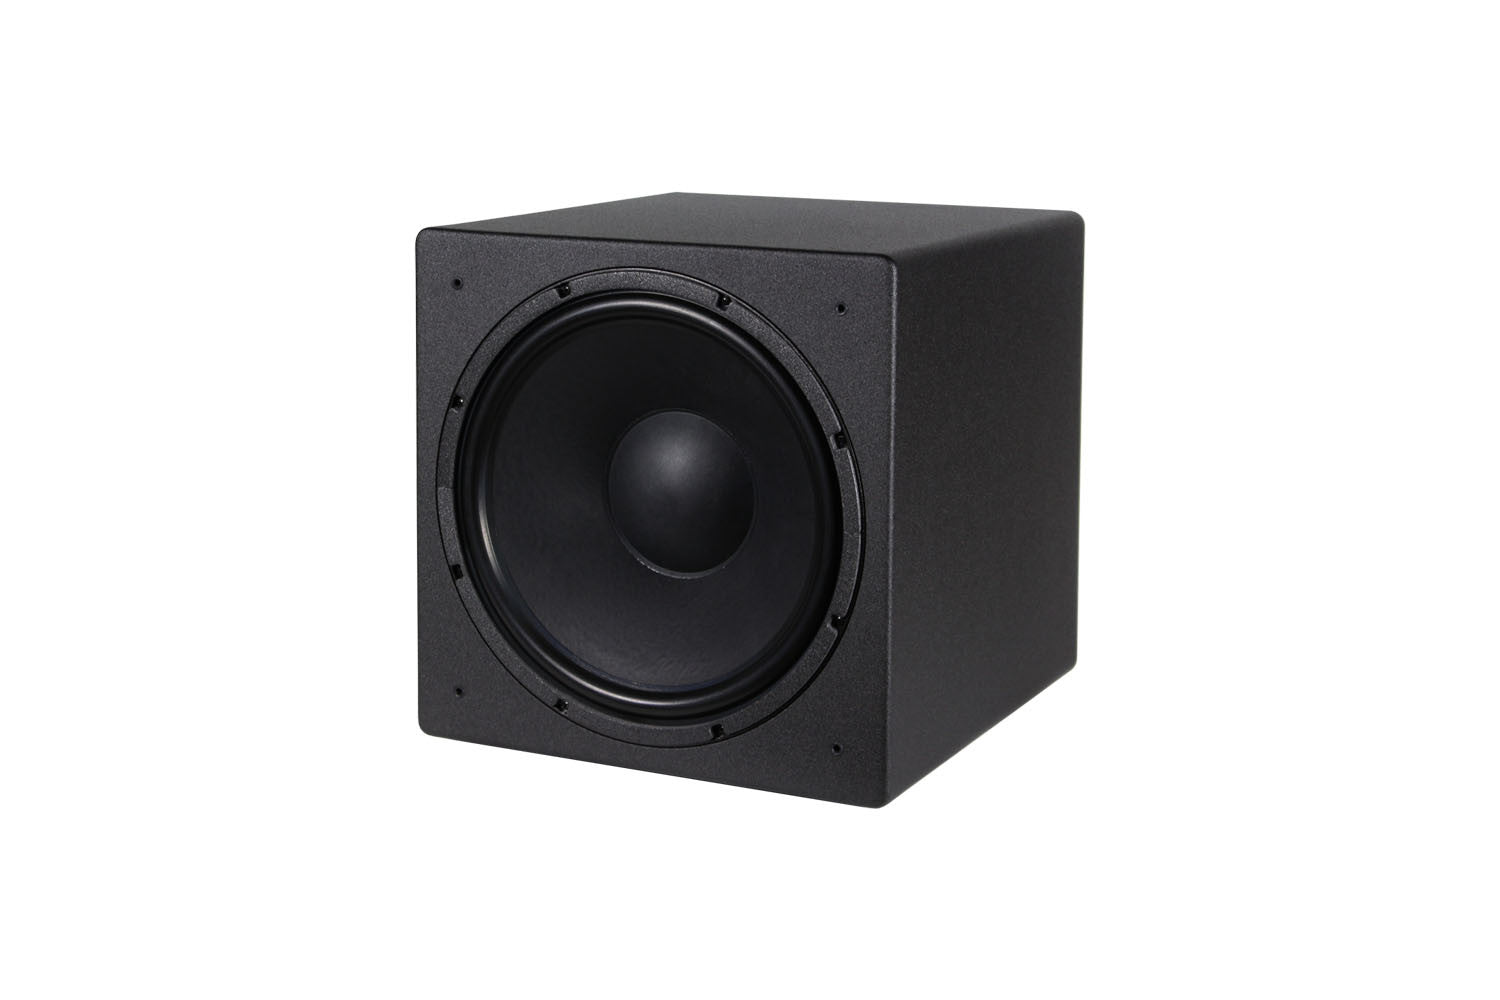 S1800 Powered Subwoofer